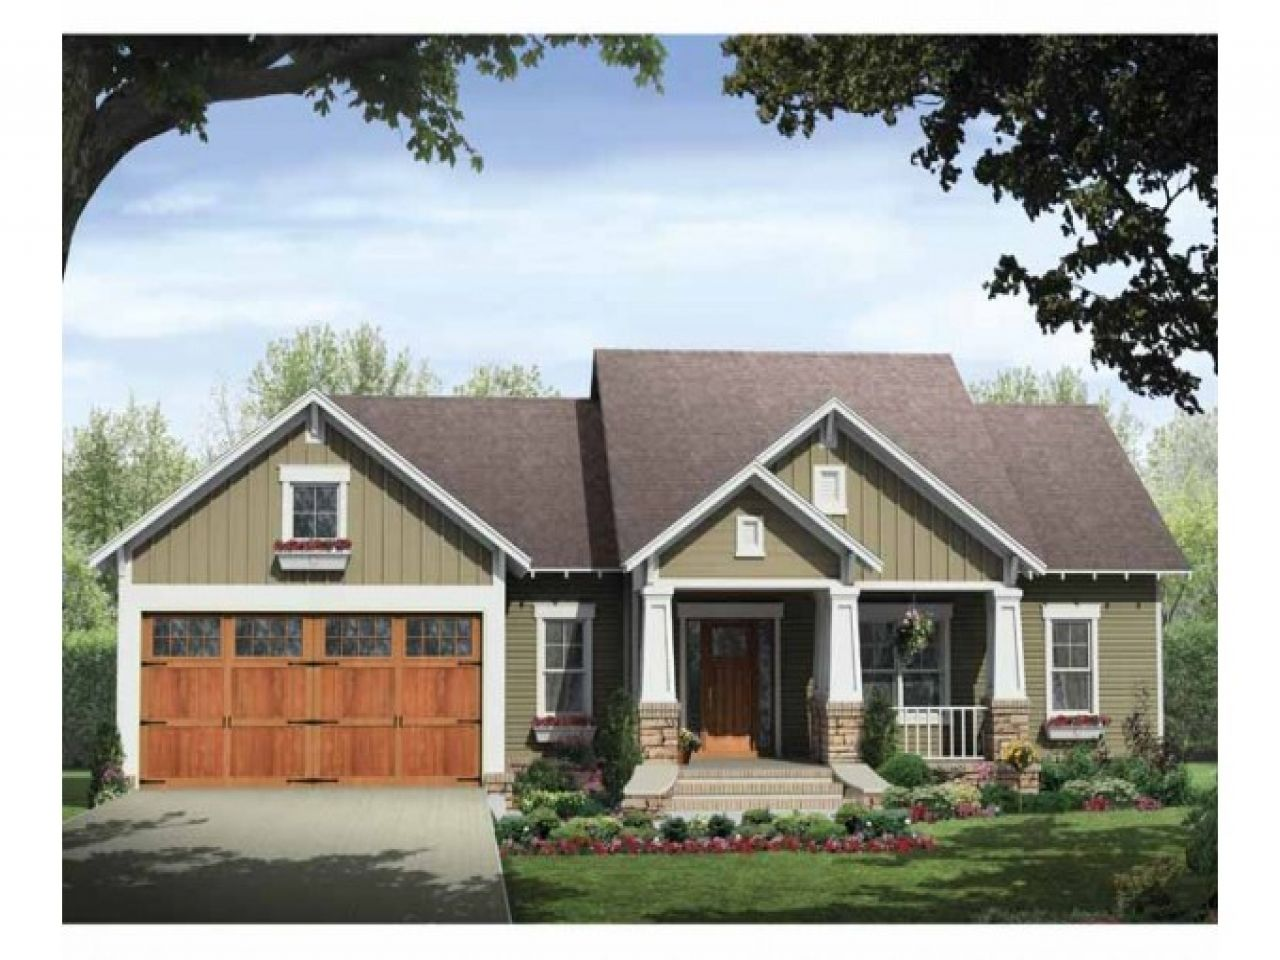 10 Elegant Craftsman House Plans Will Inspire You Craftsman House Plans Craftsman House Plan Craftsman Style House Plans